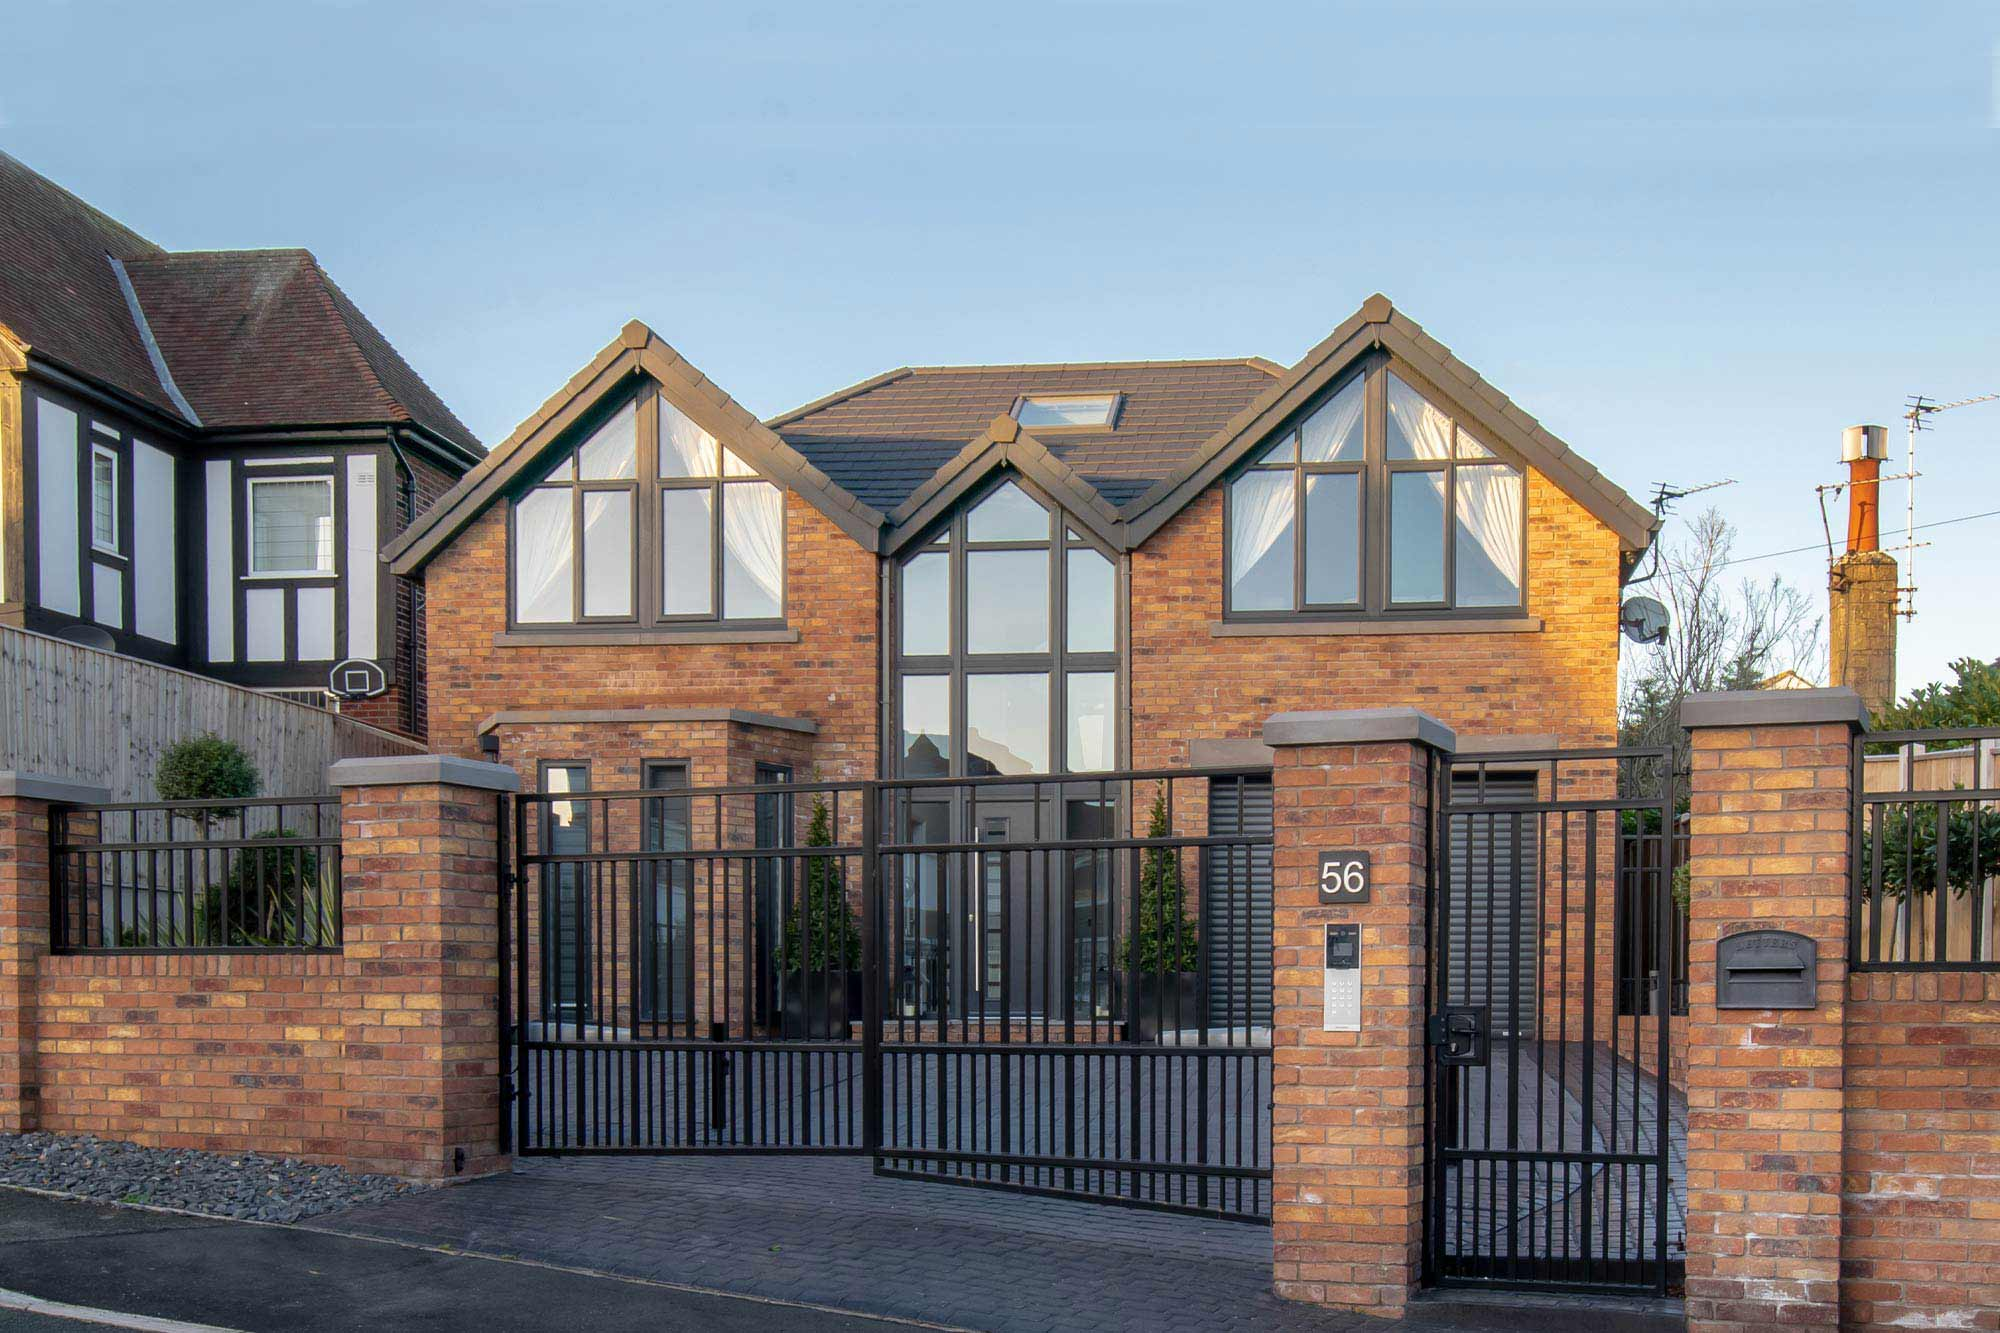 Traditional bespoke home with contemporary twist architectural design in Poulton-le-Fylde